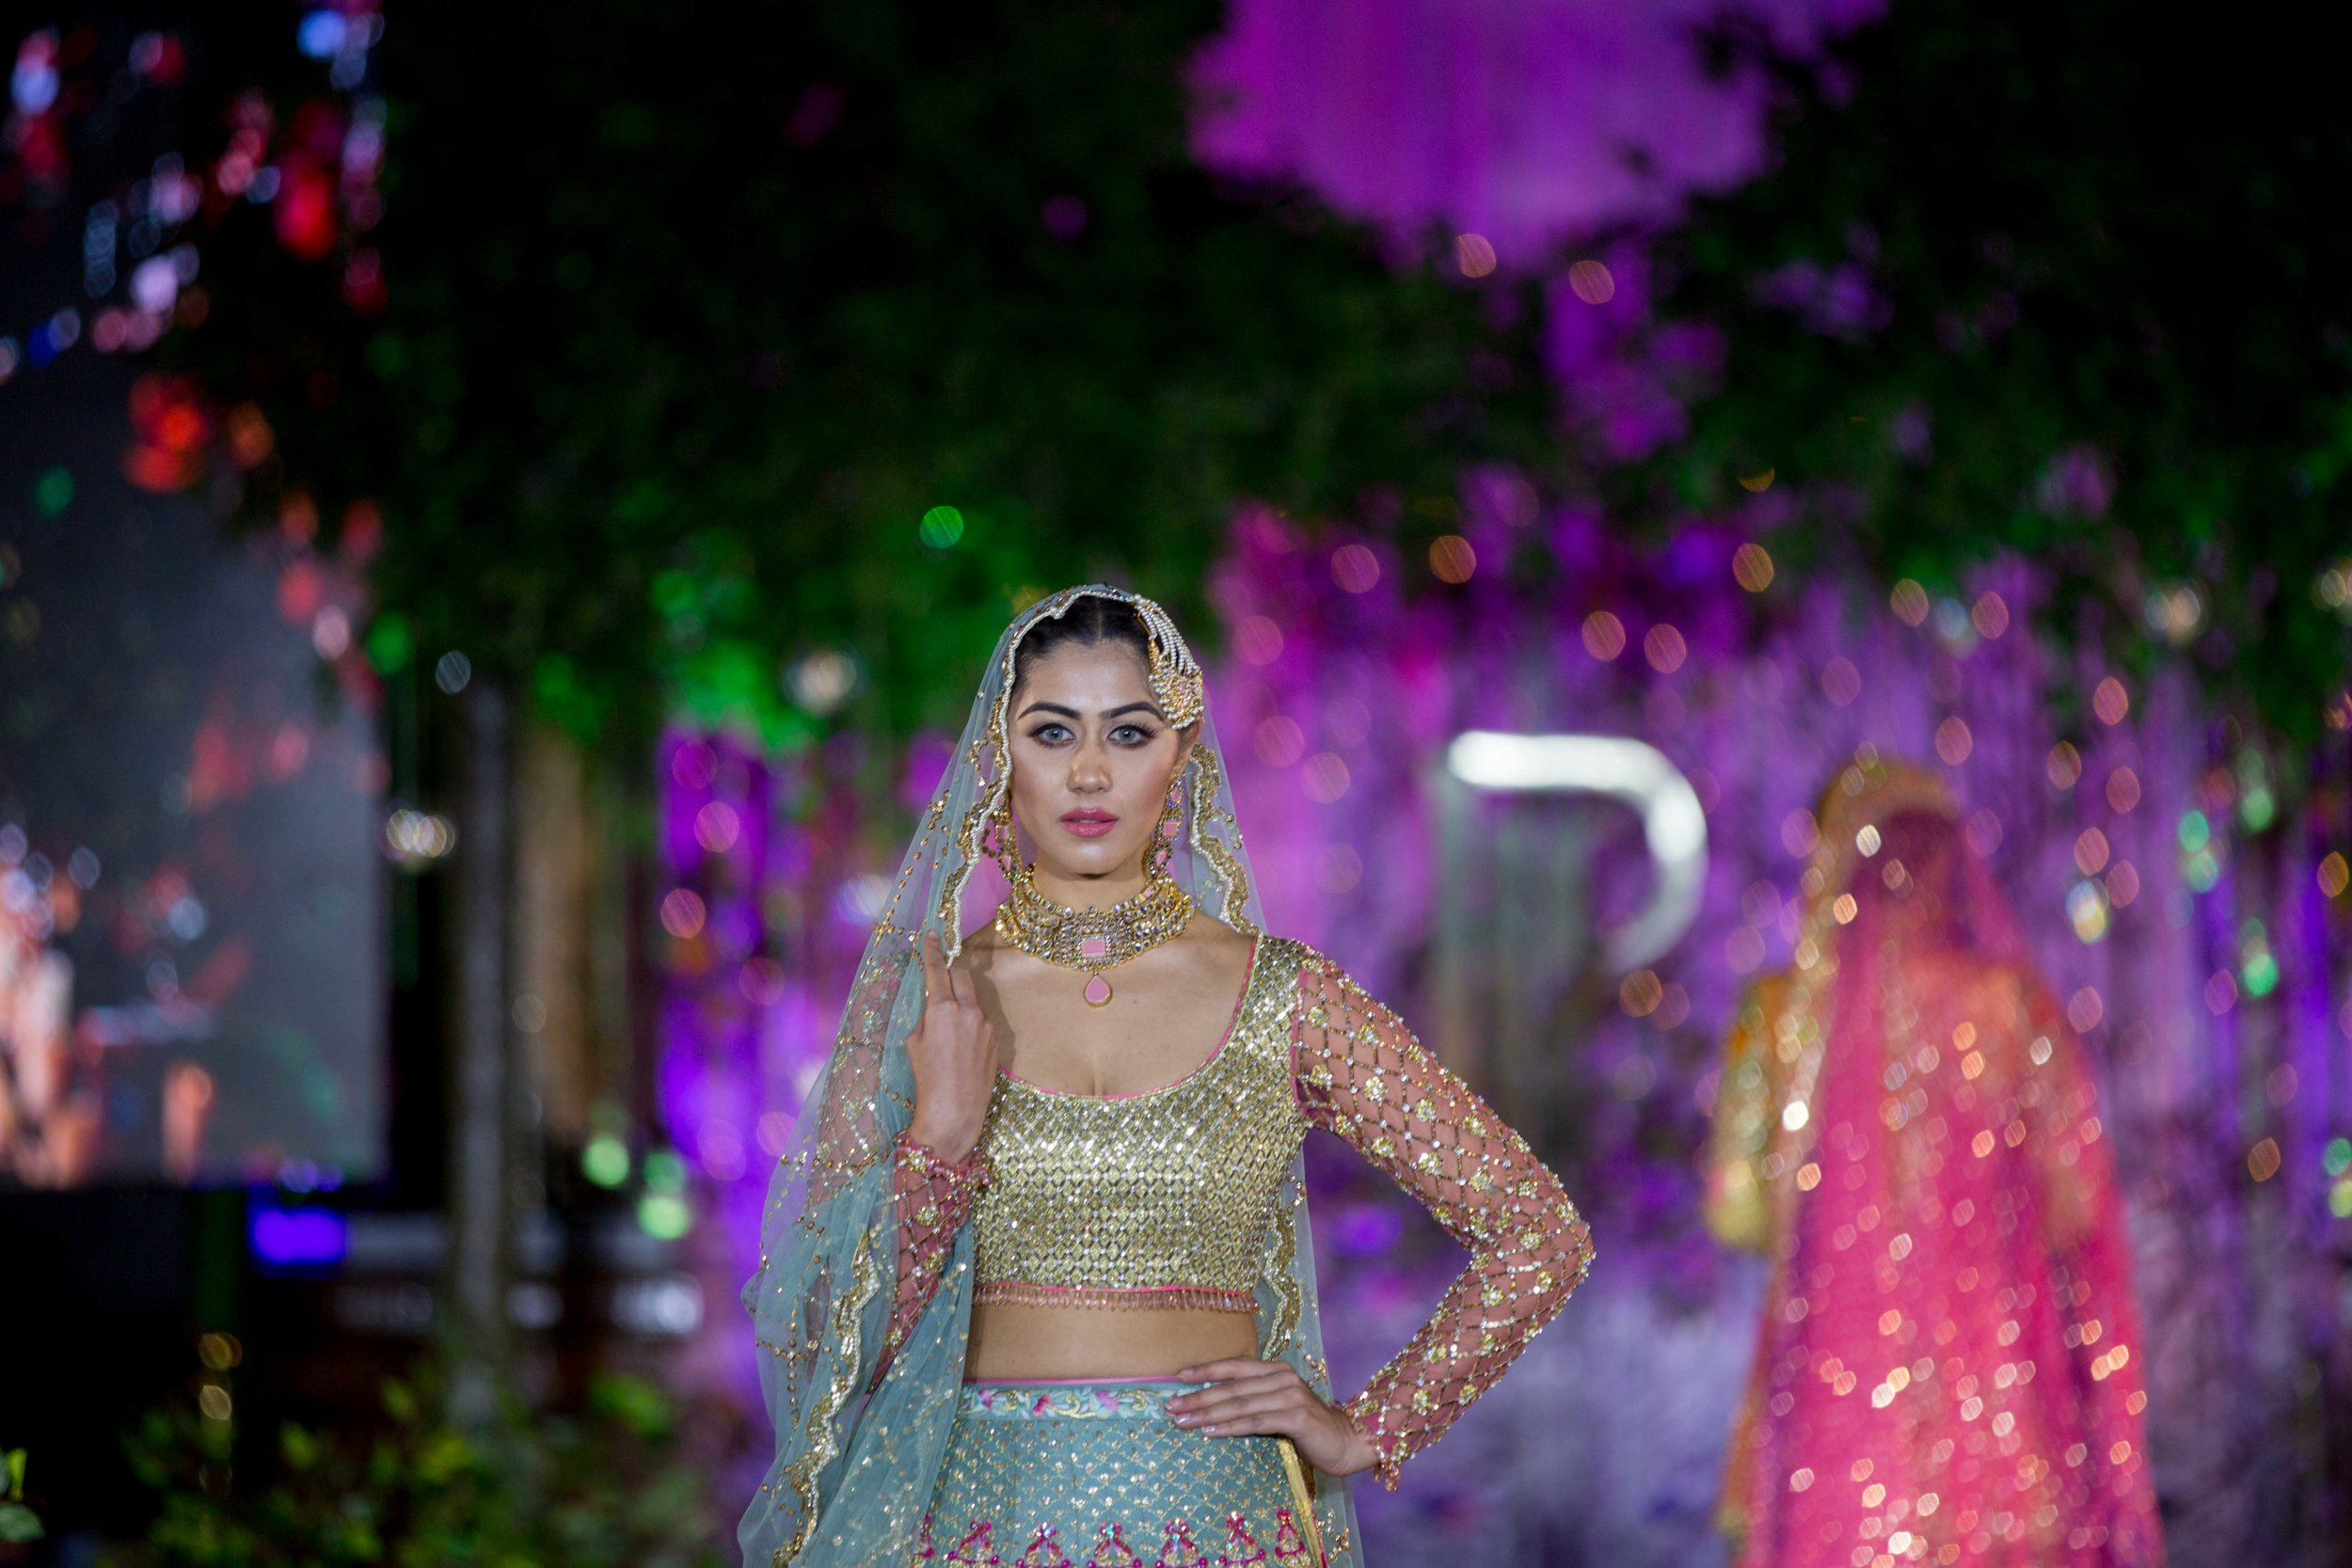 IPLF-IPL-Indian-Pakistani-London-Fashion-London-Week-catwalk-photographer-natalia-smith-photography-Nomi-Ansari-7.jpg